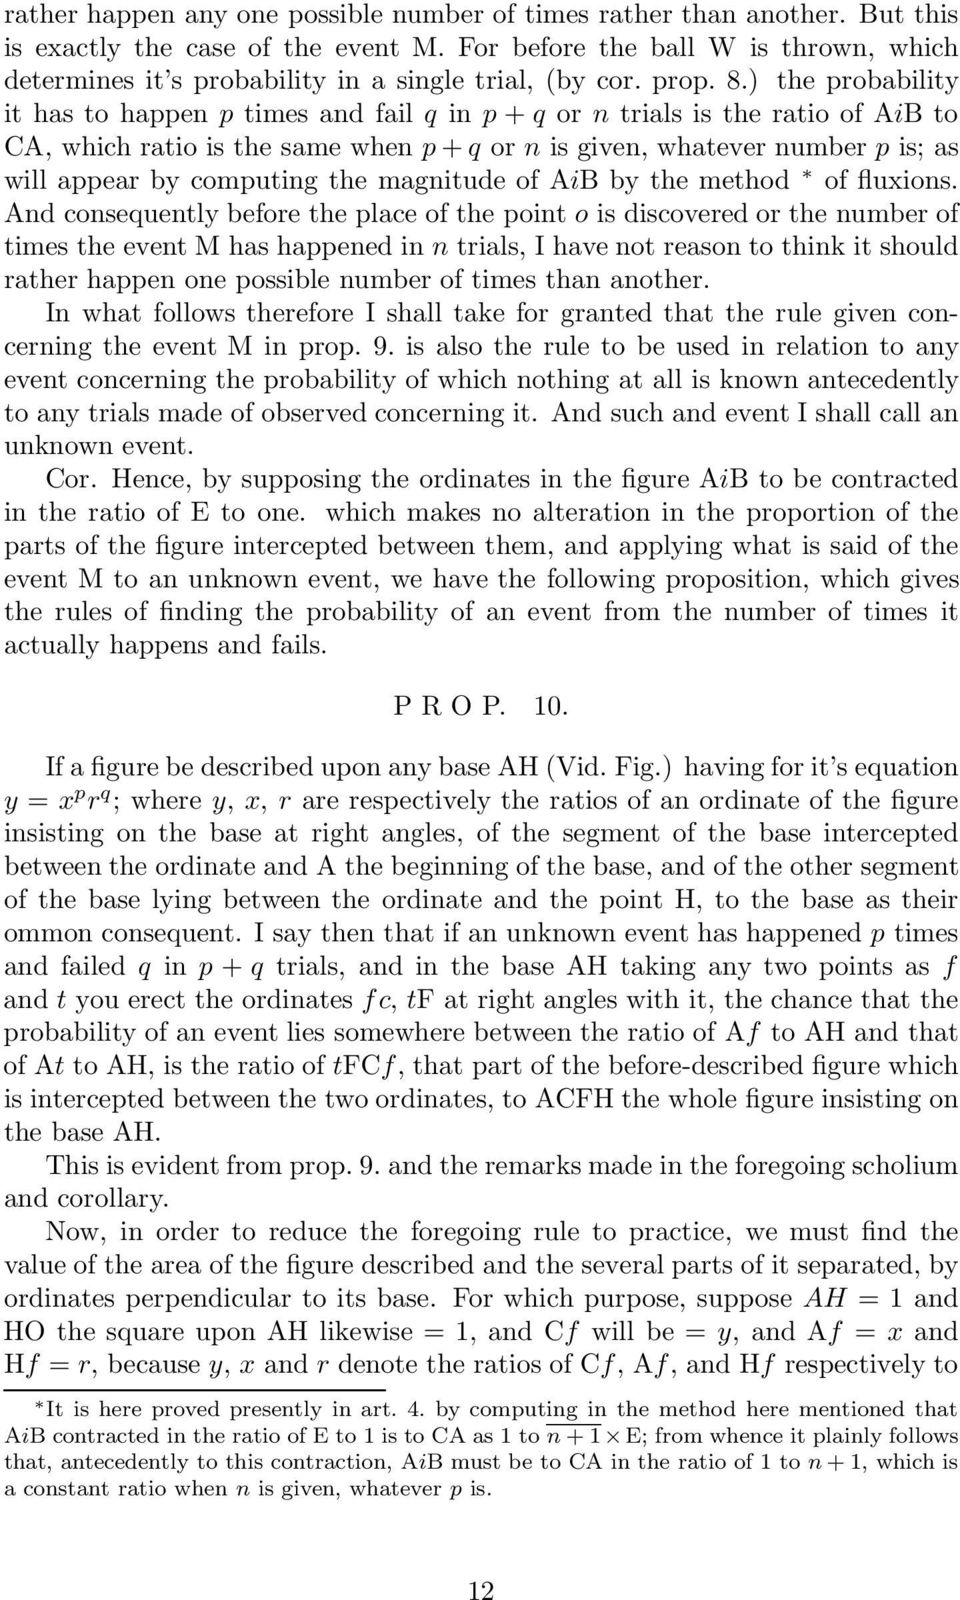 ) the probability it has to happen p times and fail q in p + q or n trials is the ratio of AiB to CA, which ratio is the same when p + q or n is given, whatever number p is; as will appear by